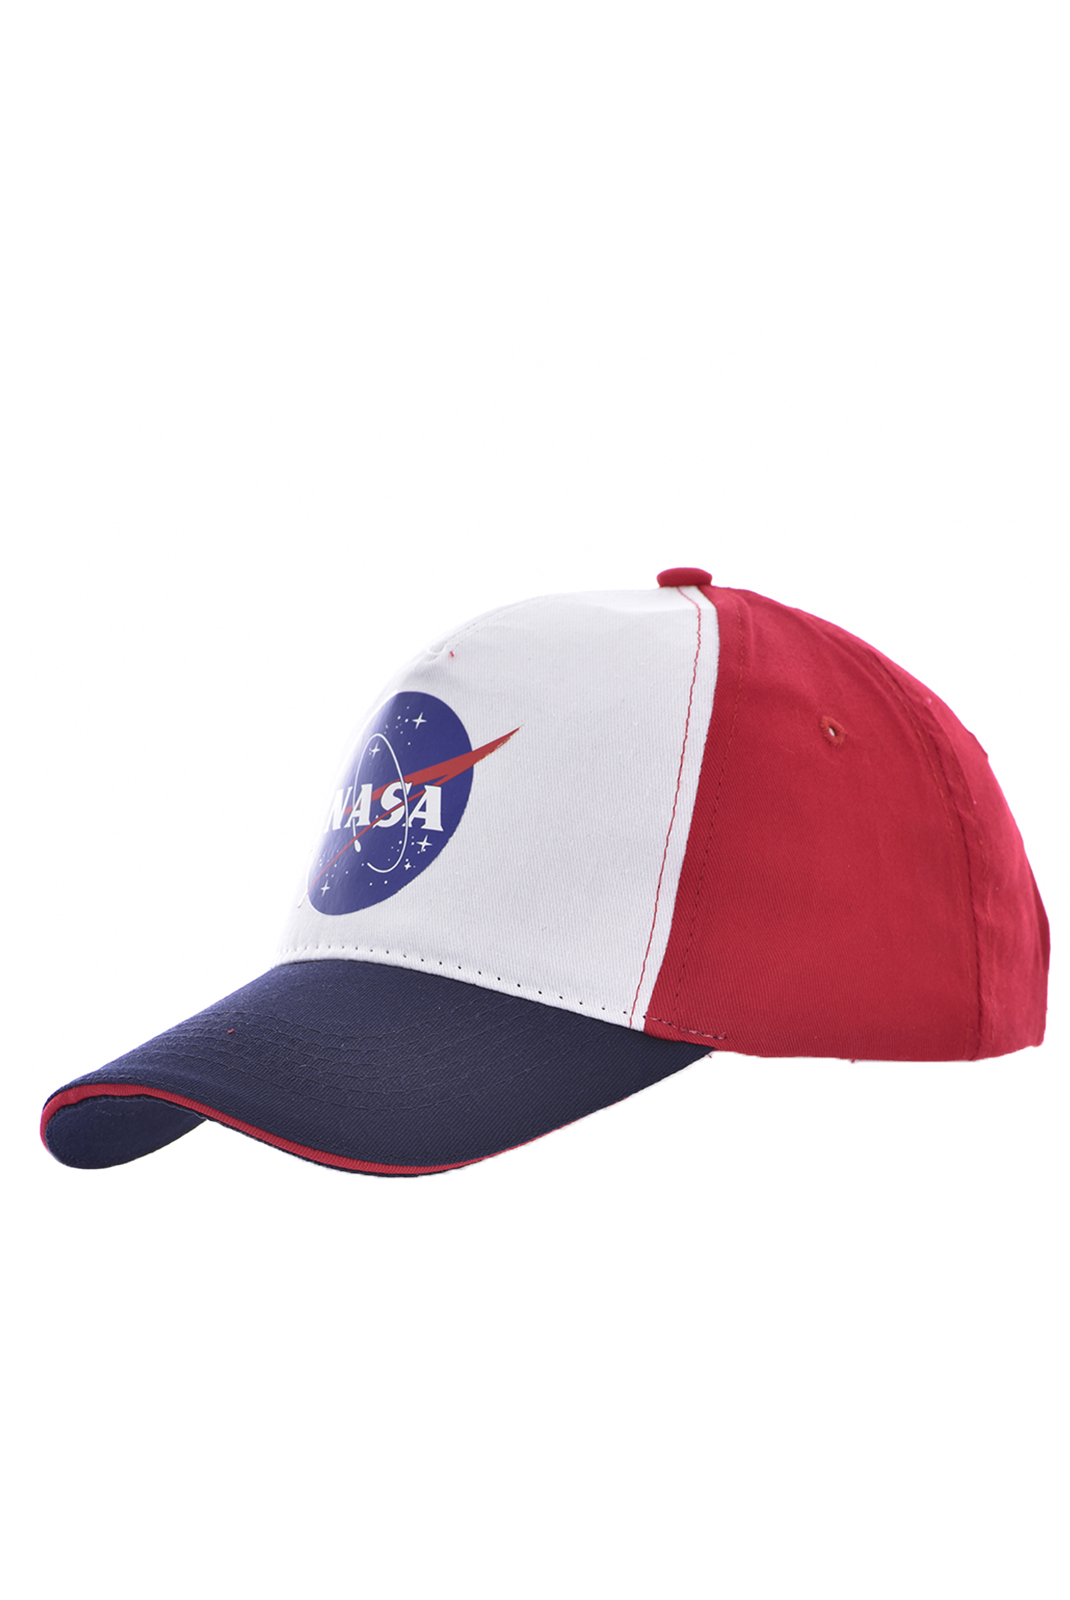 Bonnets / Casquettes  Nasa MULTI-BALL CAP WHITE